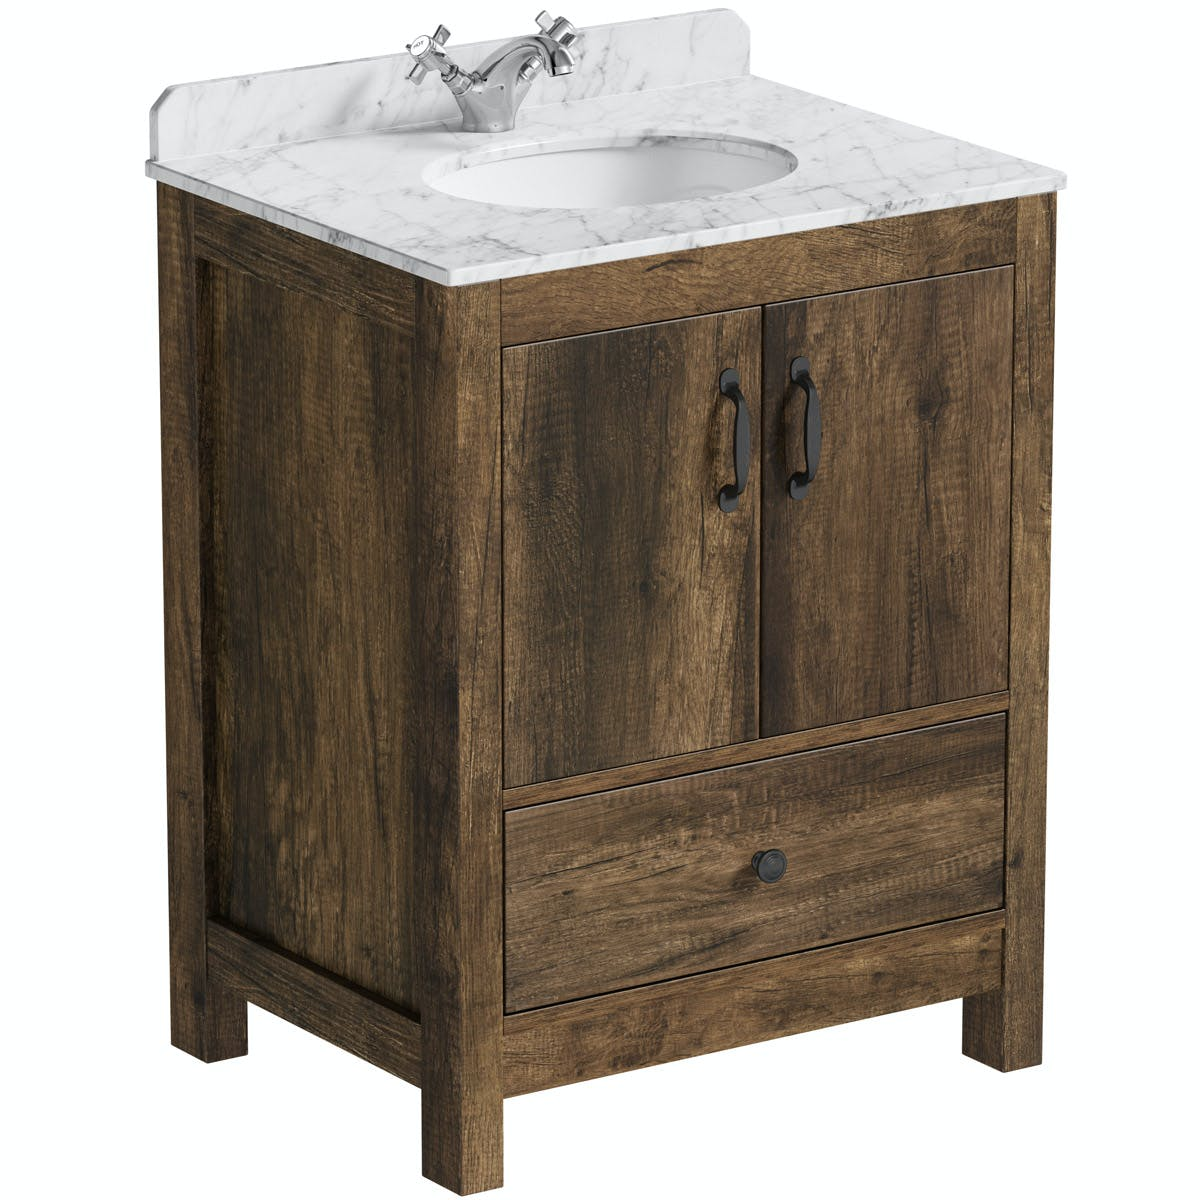 The Bath Co Dalston Floorstanding Vanity Unit And White Marble Basin 900mm